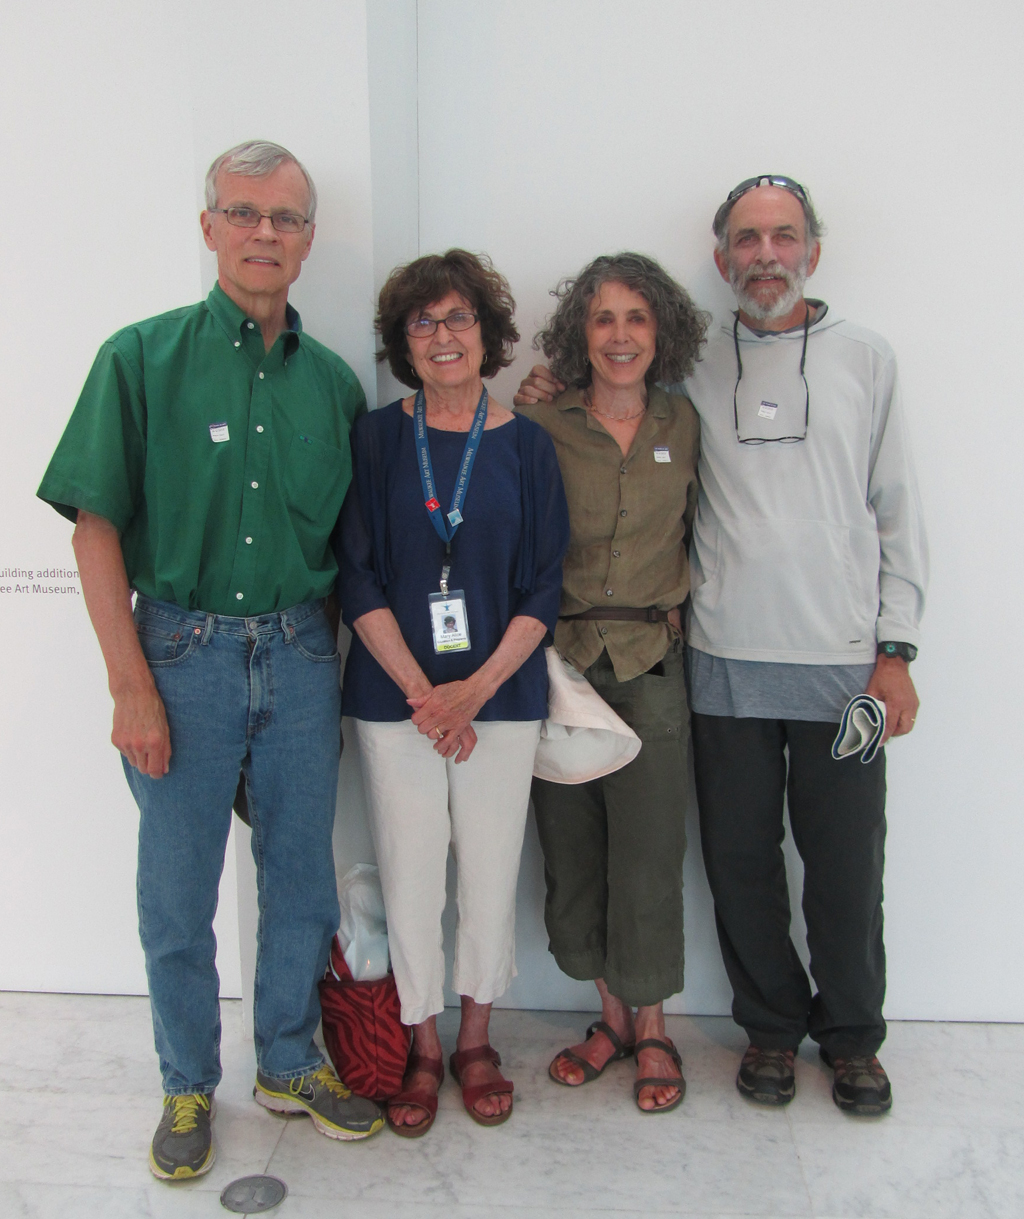 Fran and Mary Wasielewski, Sally Holland, and Jerome Schofferman visit the Museum on Friday August 9, 2013. Photo by the author.